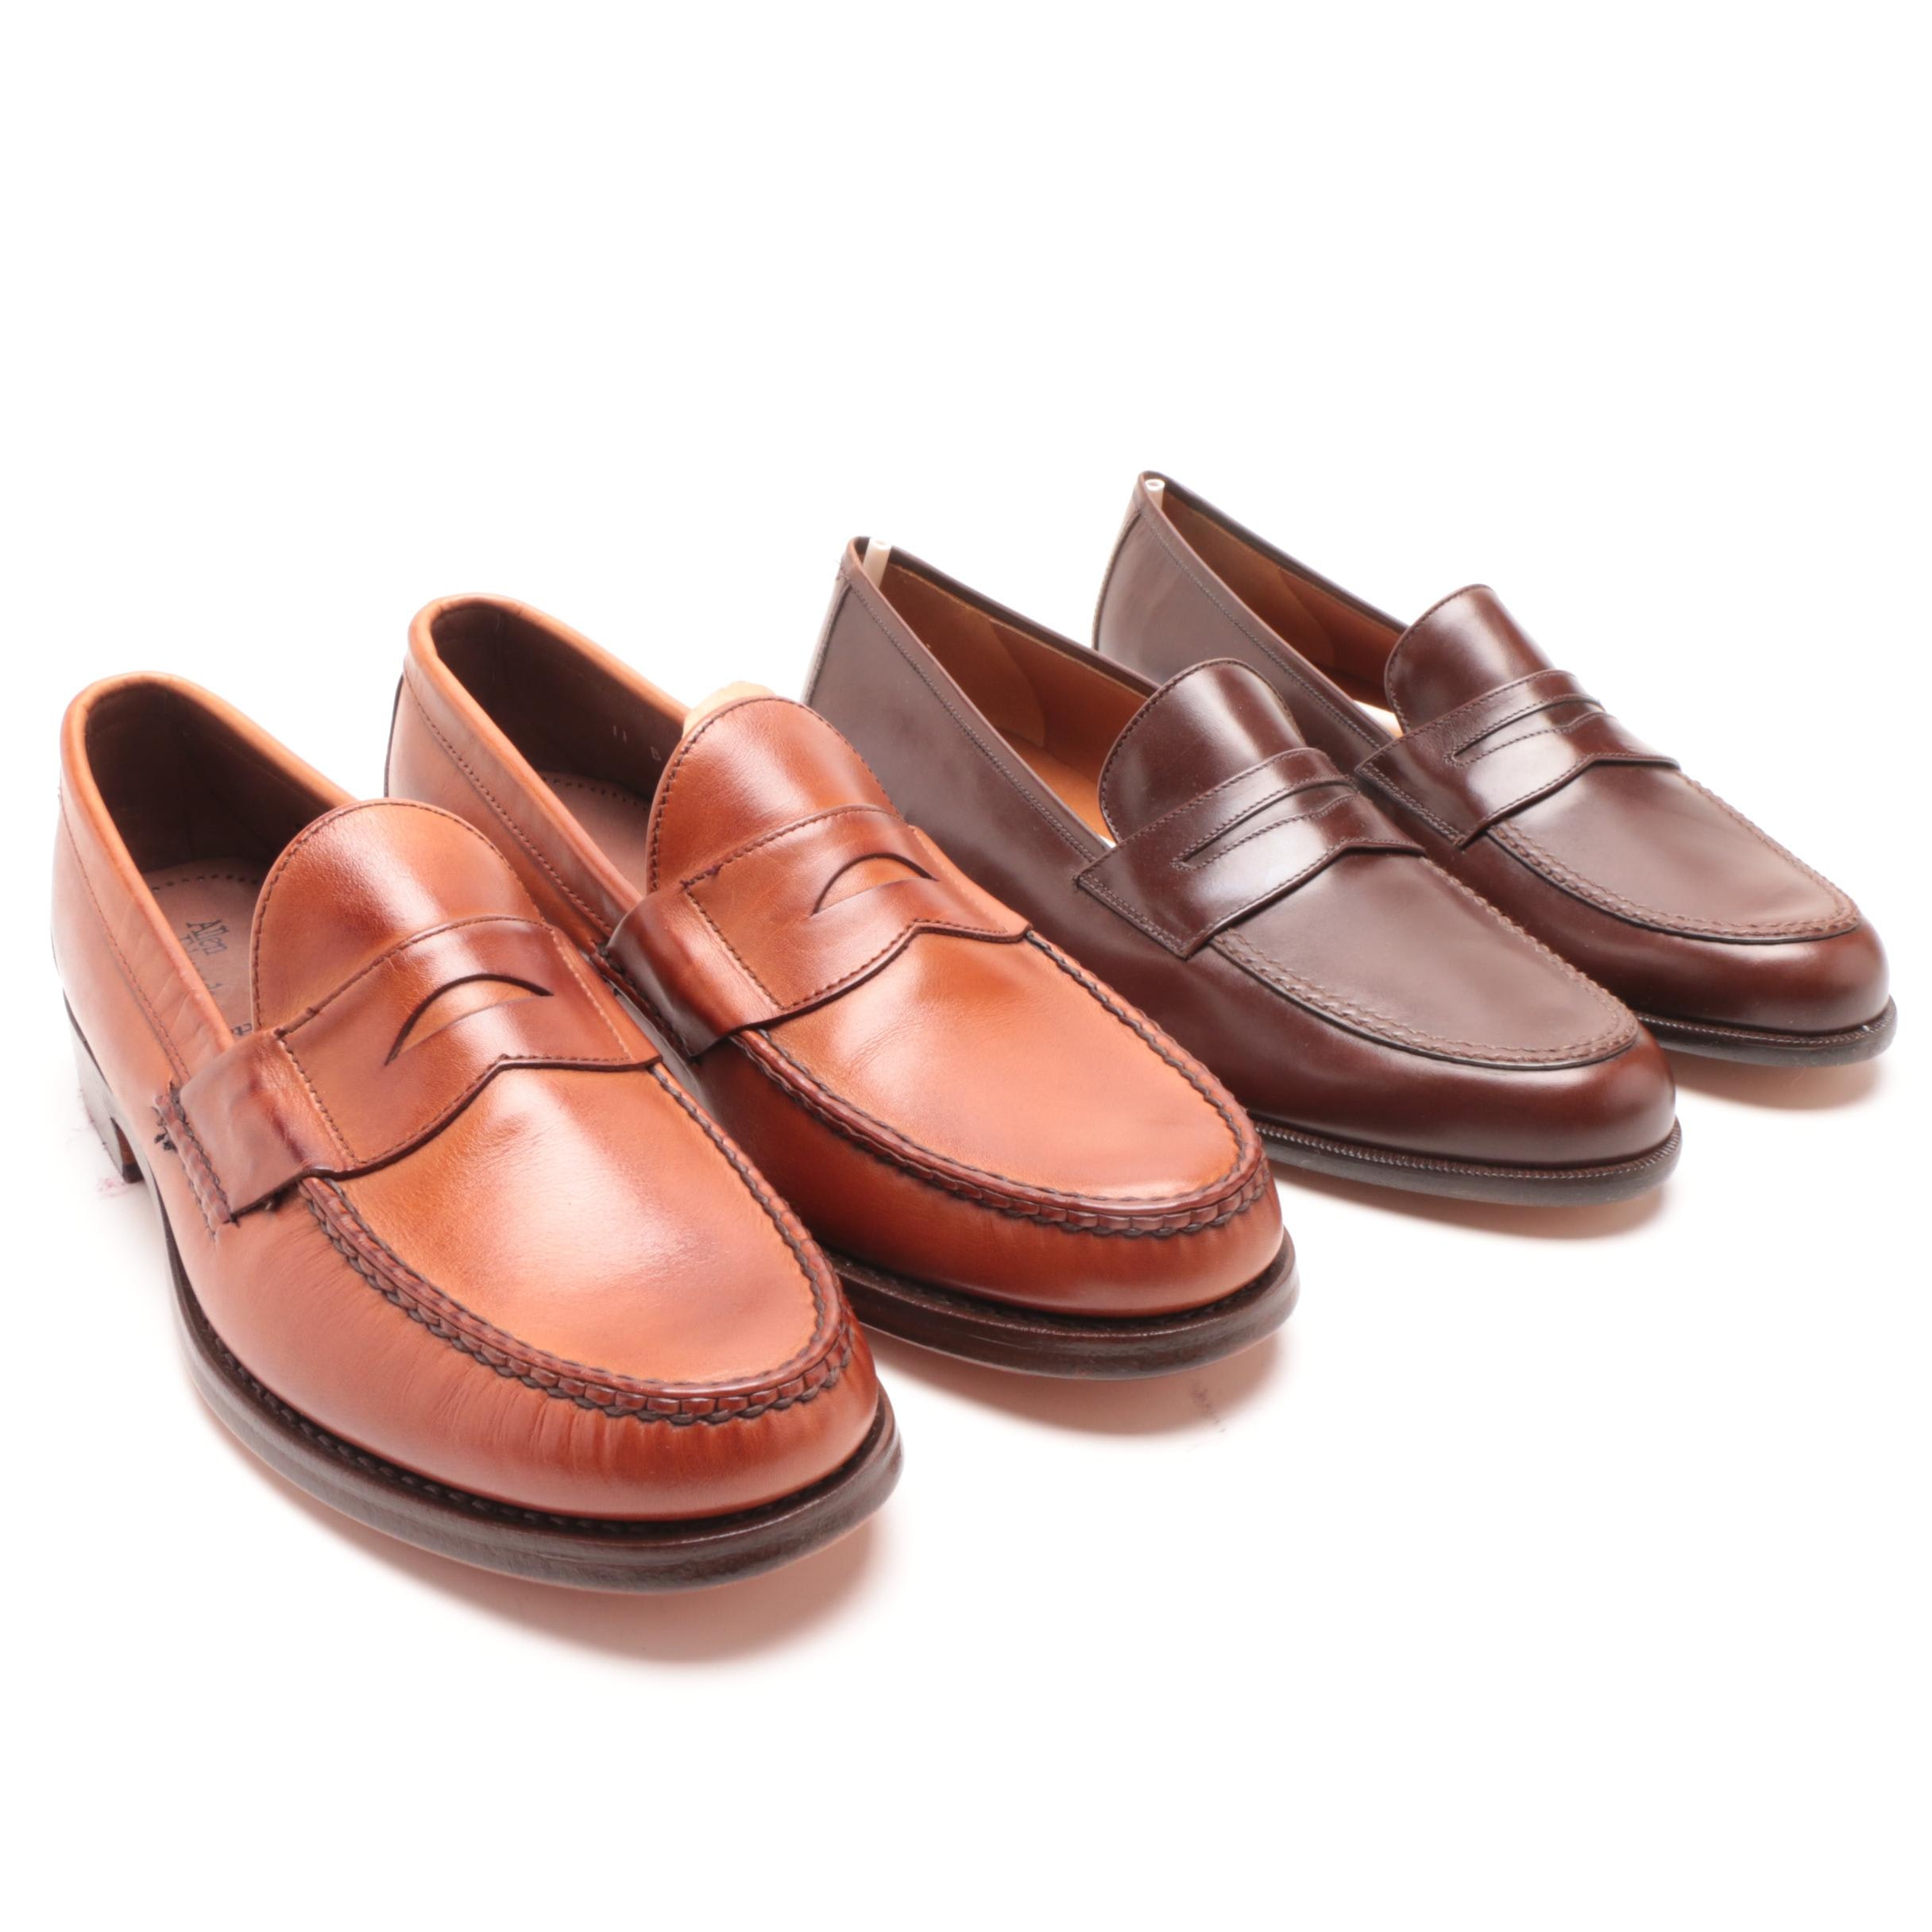 Men's Salvatore Ferragamo and Allen Edmonds Leather Loafers